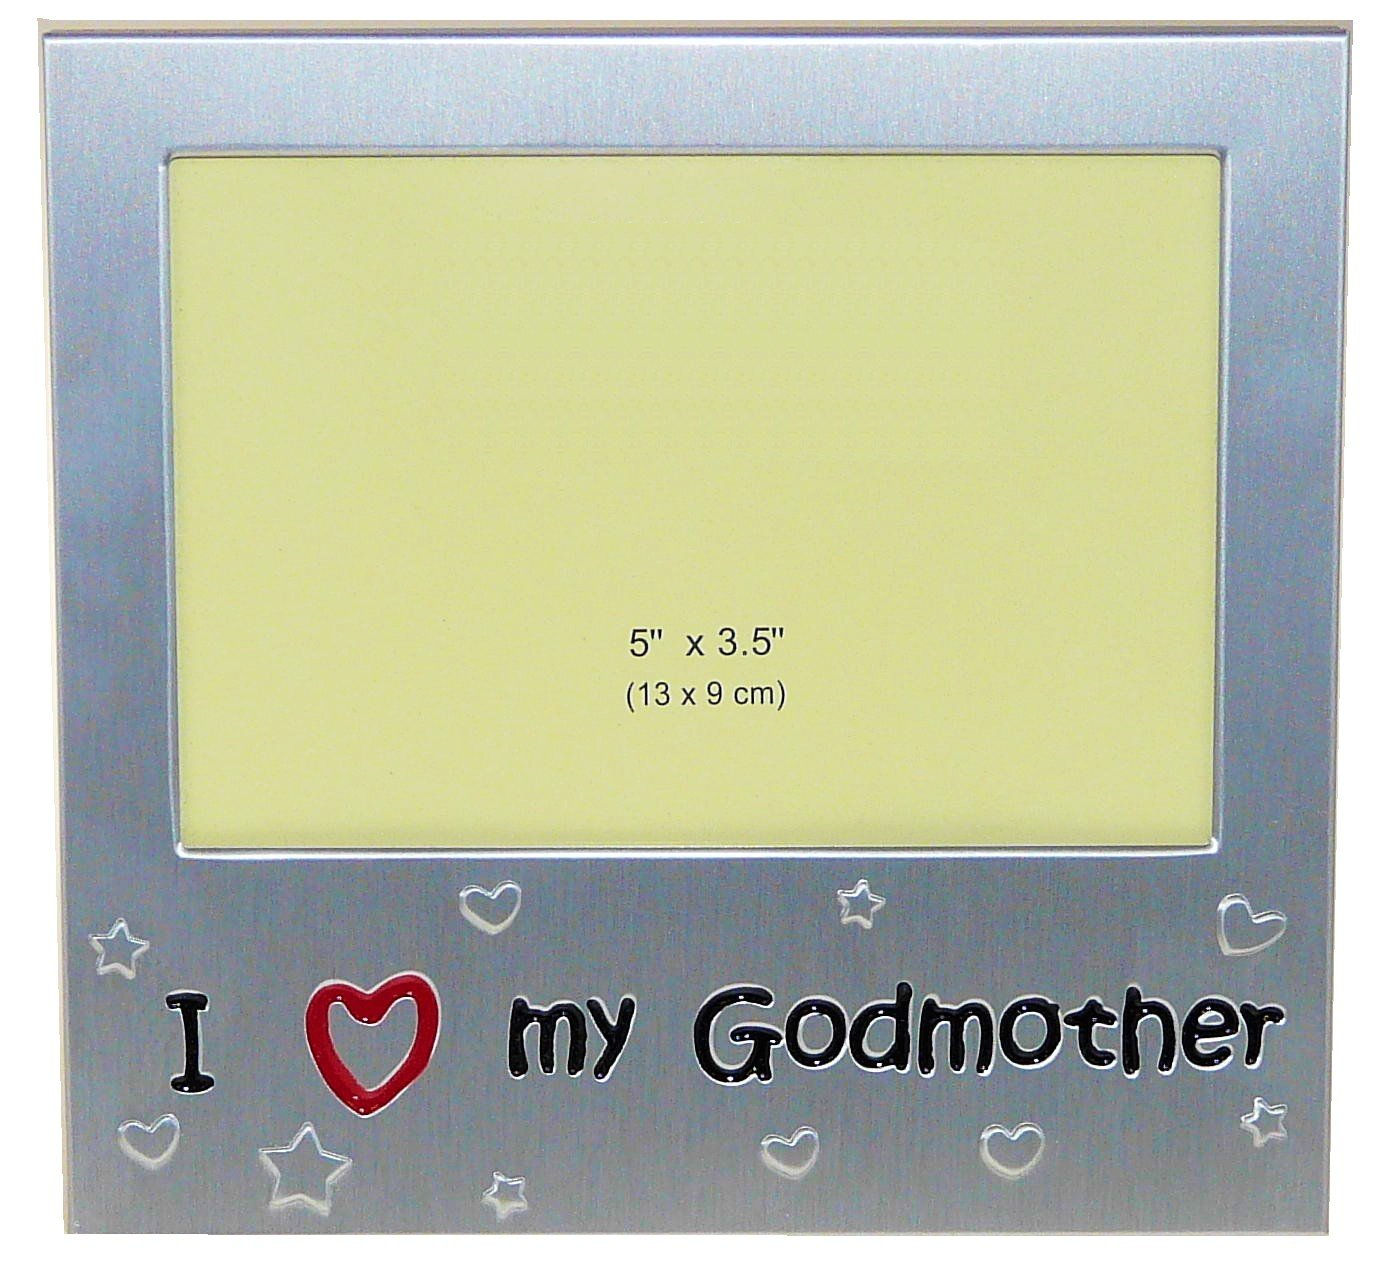 I Love My Godmother Photo Picture Frame Gift 5 X 35